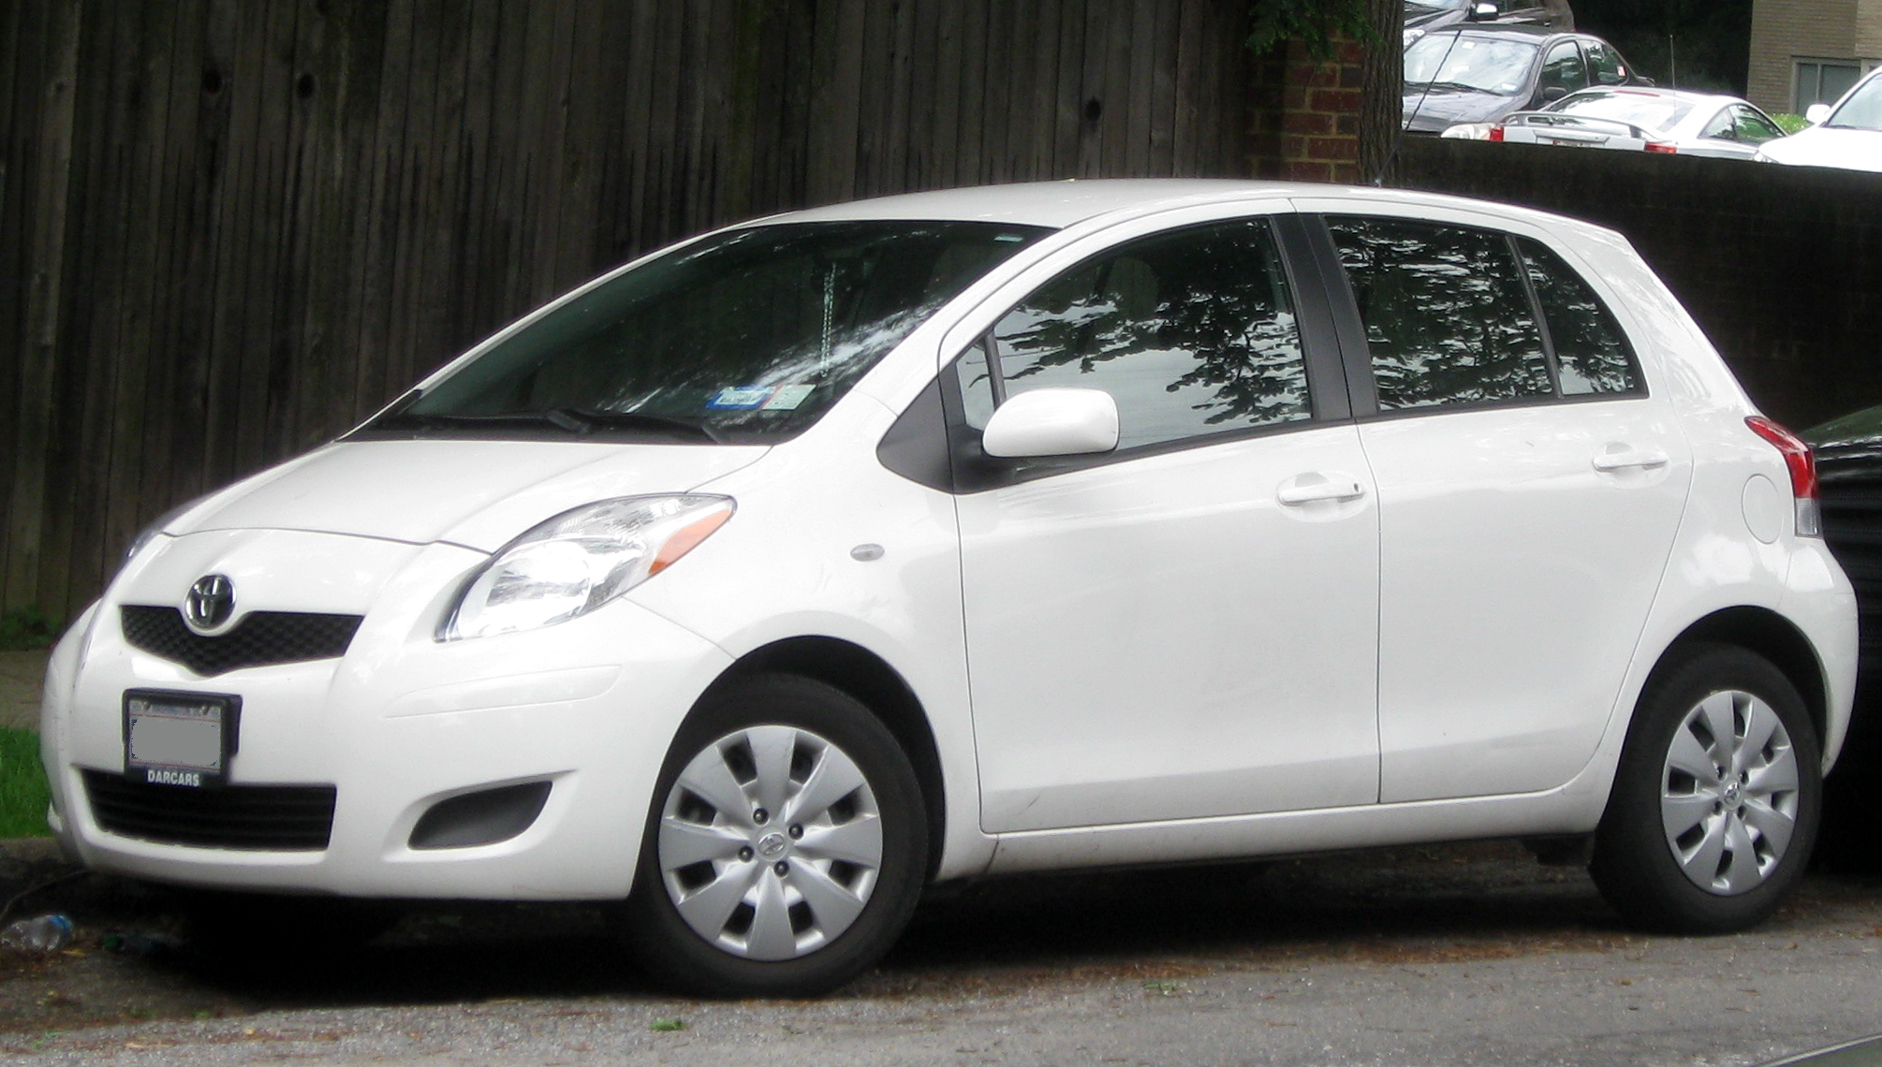 File:2009-2011 Toyota Yaris 5-door -- 05-28-2011.jpg ...